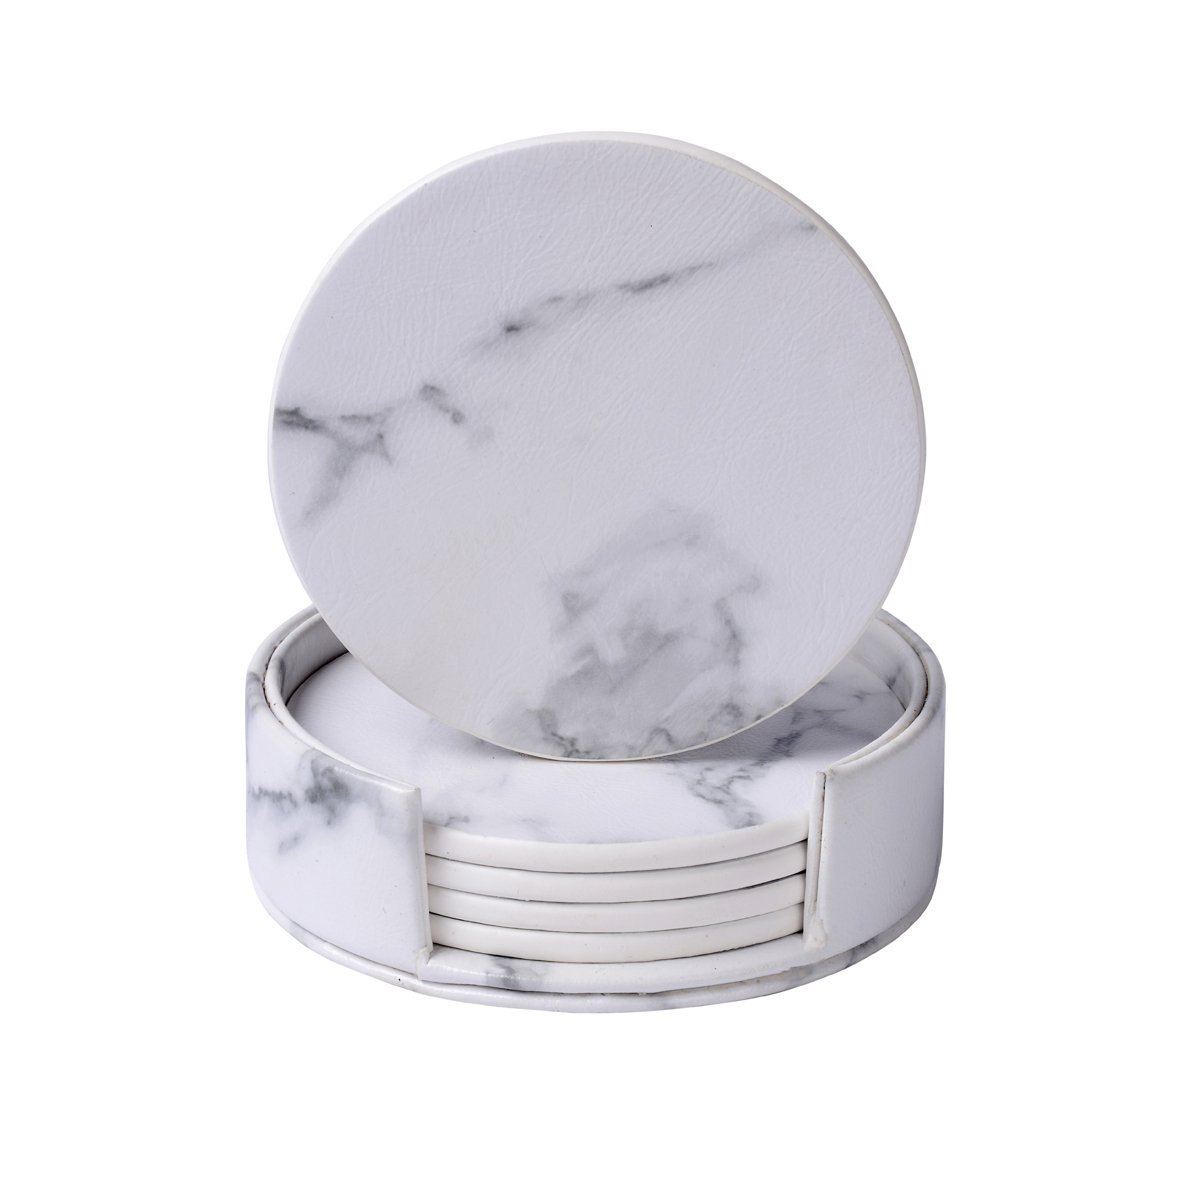 Leather Coasters with Holder Set,Coasters for Drinks,Round Cup Mat Pad for Home and Kitchen Use (Marble)